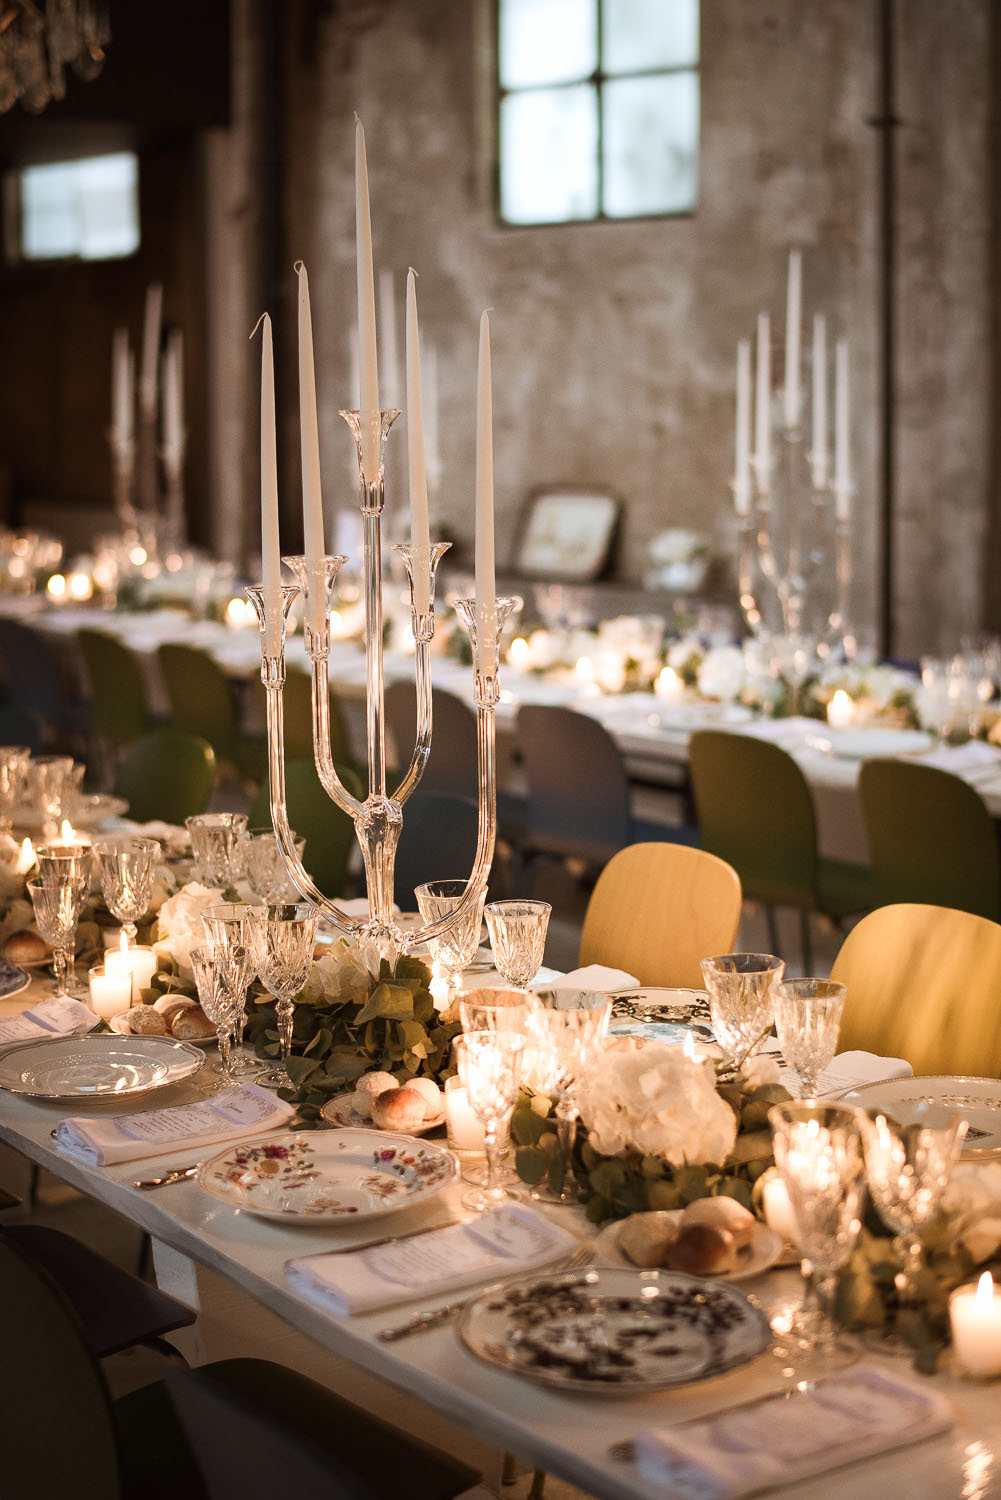 Matrimonio Country Chic Lombardia : Un matrimonio incredibilmente chic a milano wedding